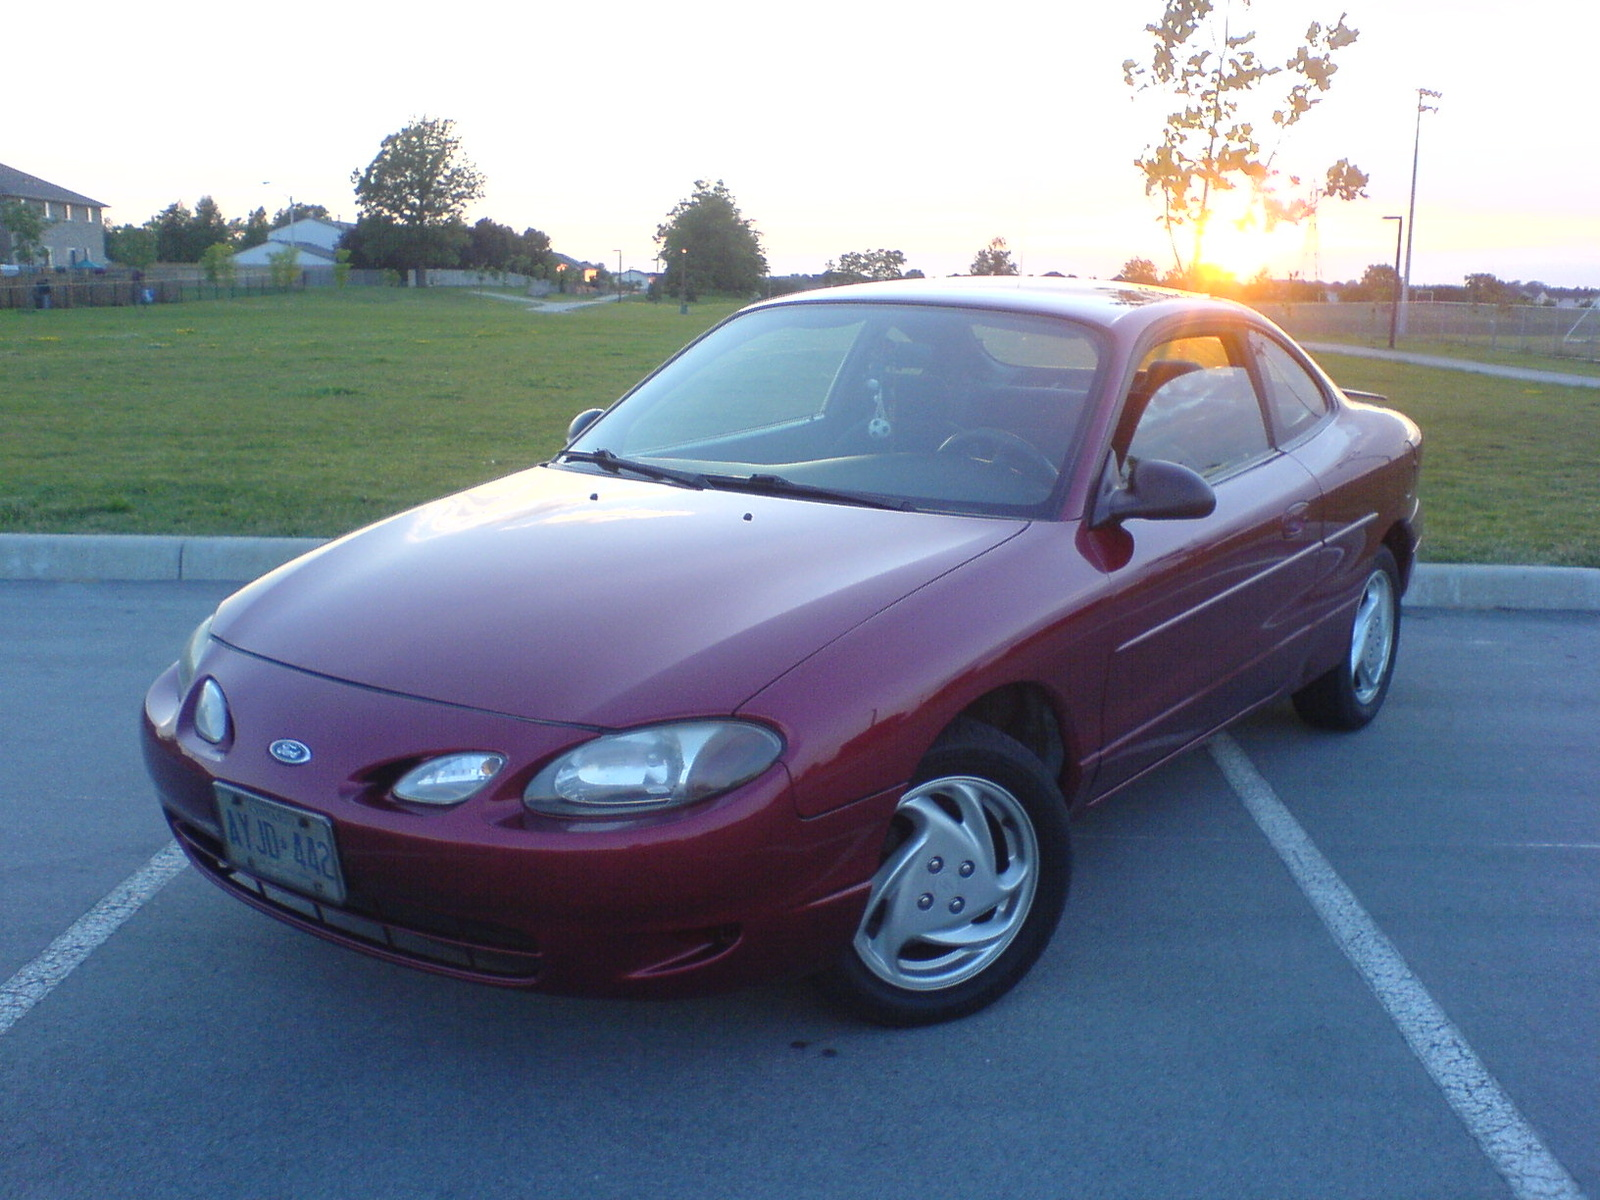 2000 Ford Escort Zx2 Coupe